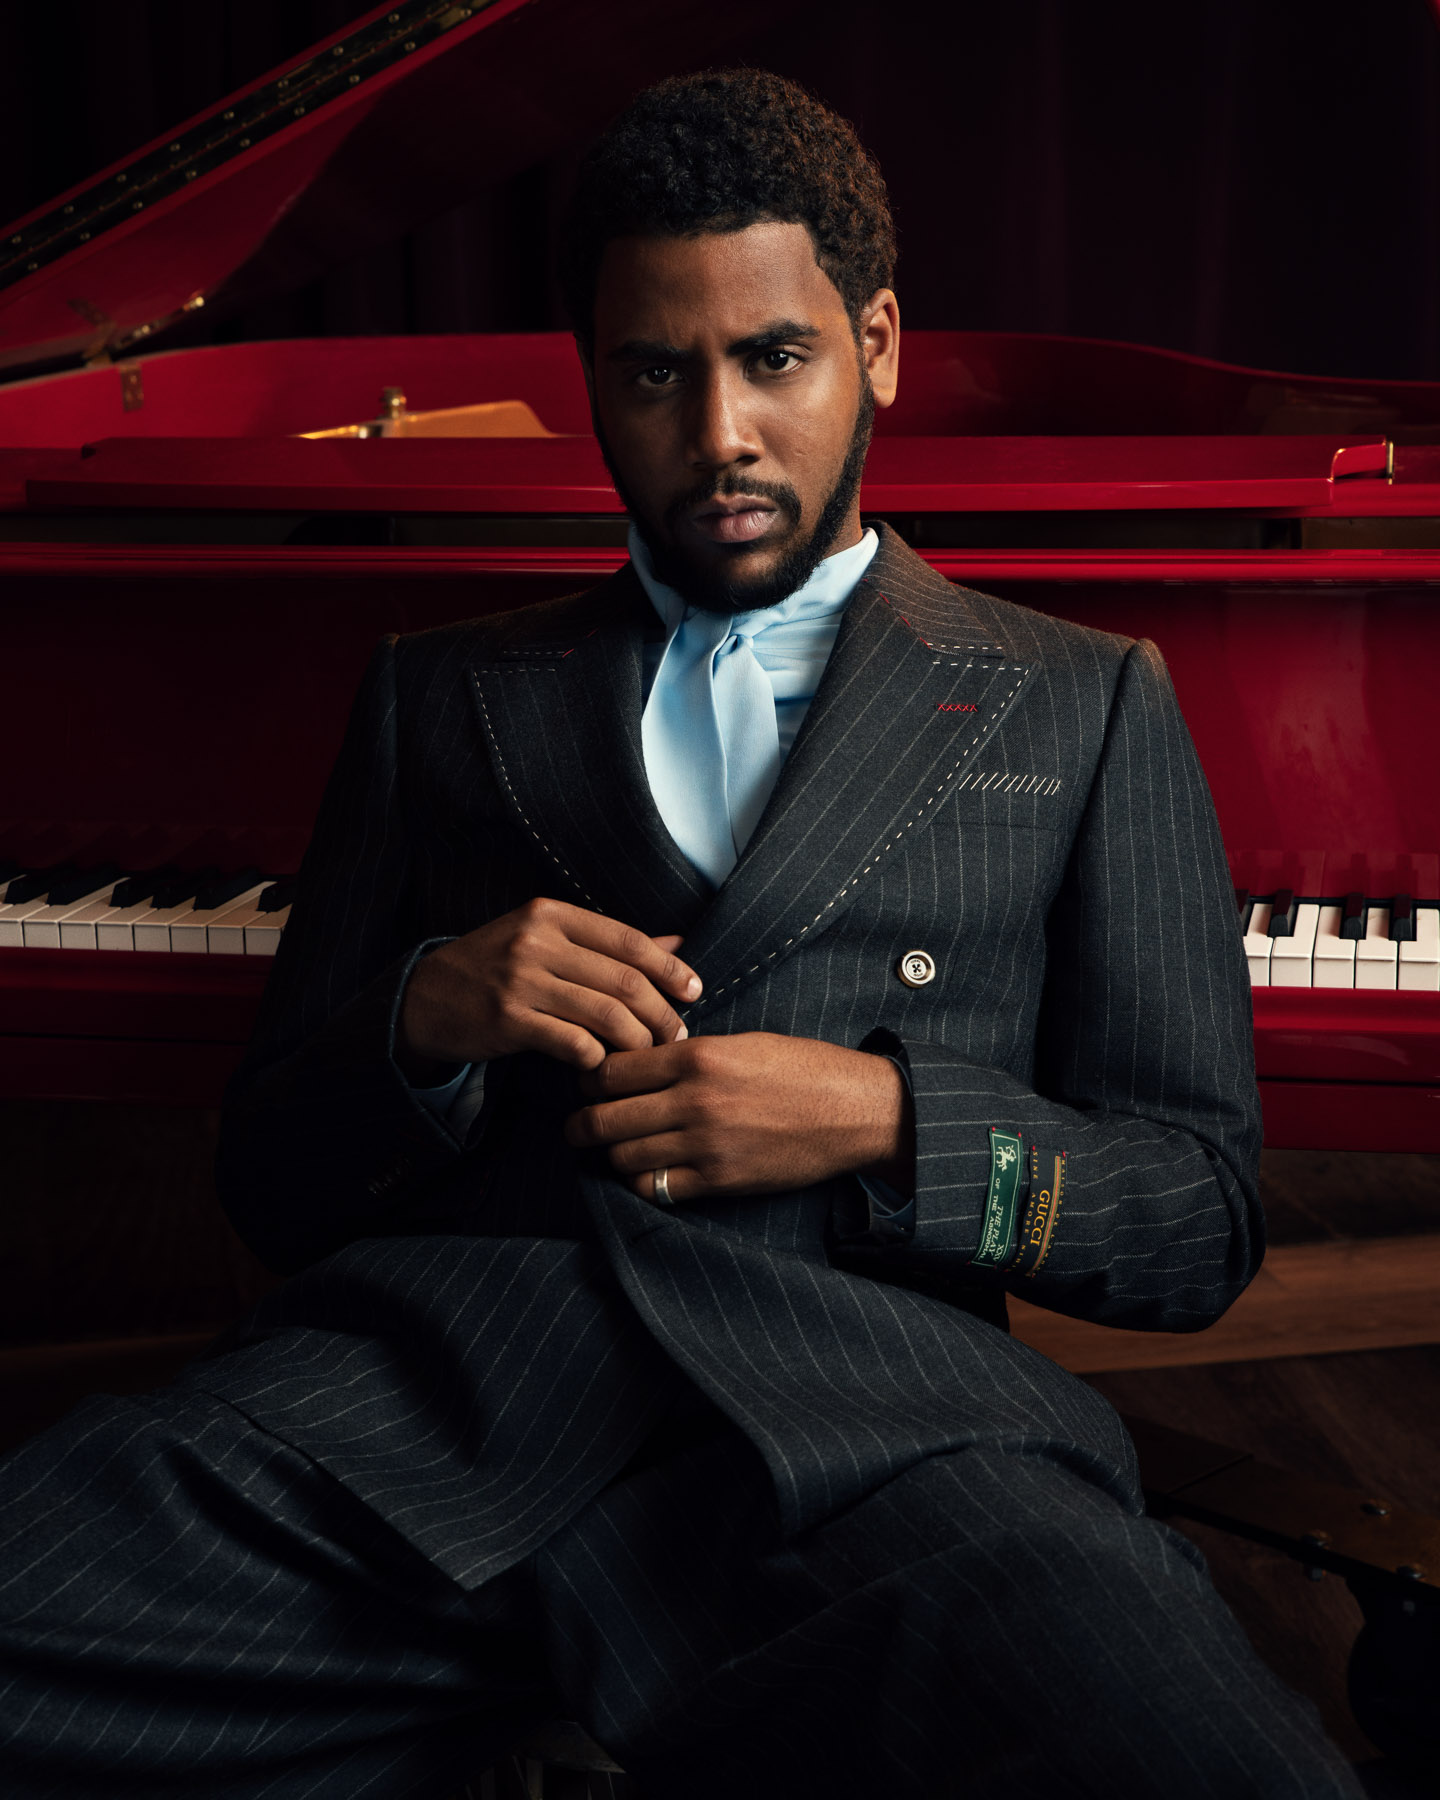 Jharrel Jerome. ContentMode.